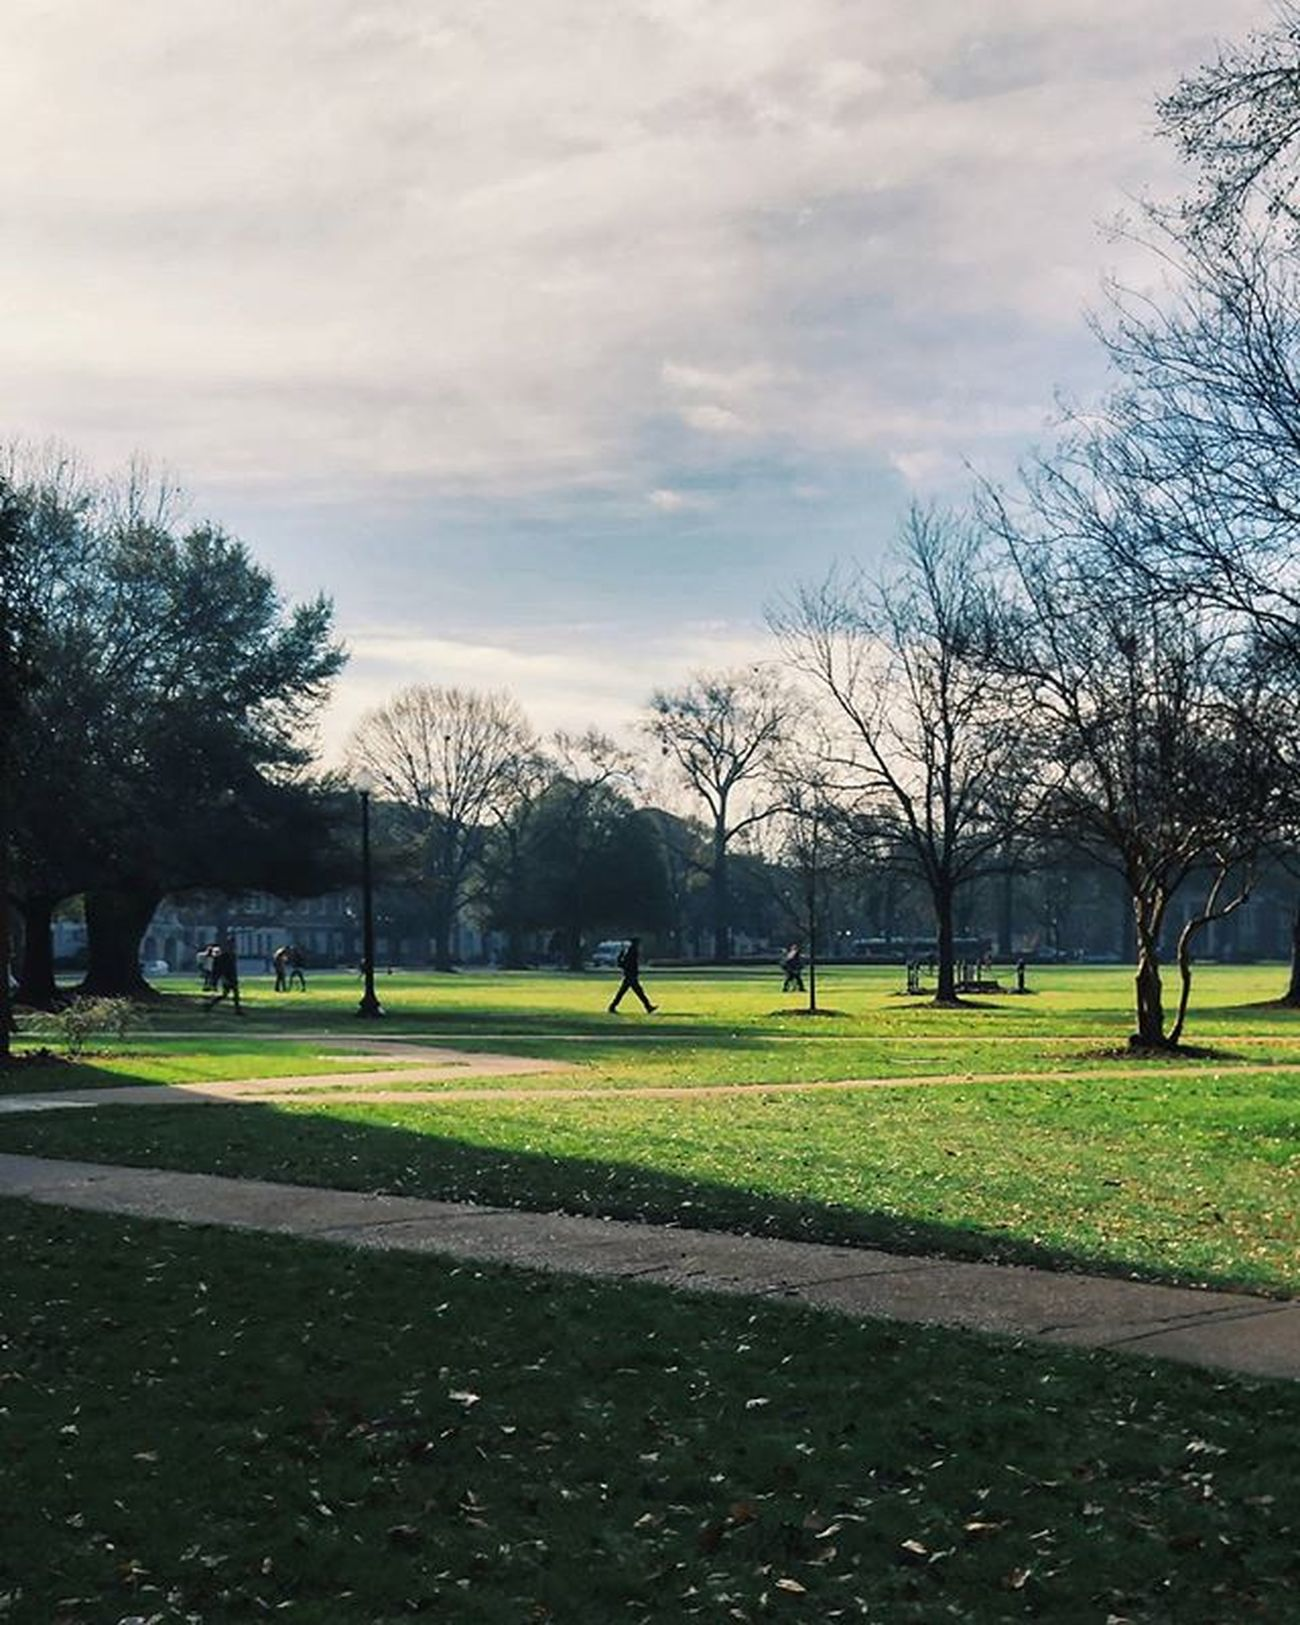 GET TO CLASS UA College South Sec Nationalchampions2016 Yourcollegetown @yourcollegetown Landscape Thequad Al VSCO Vscocam Tinypeopleinbigplaces